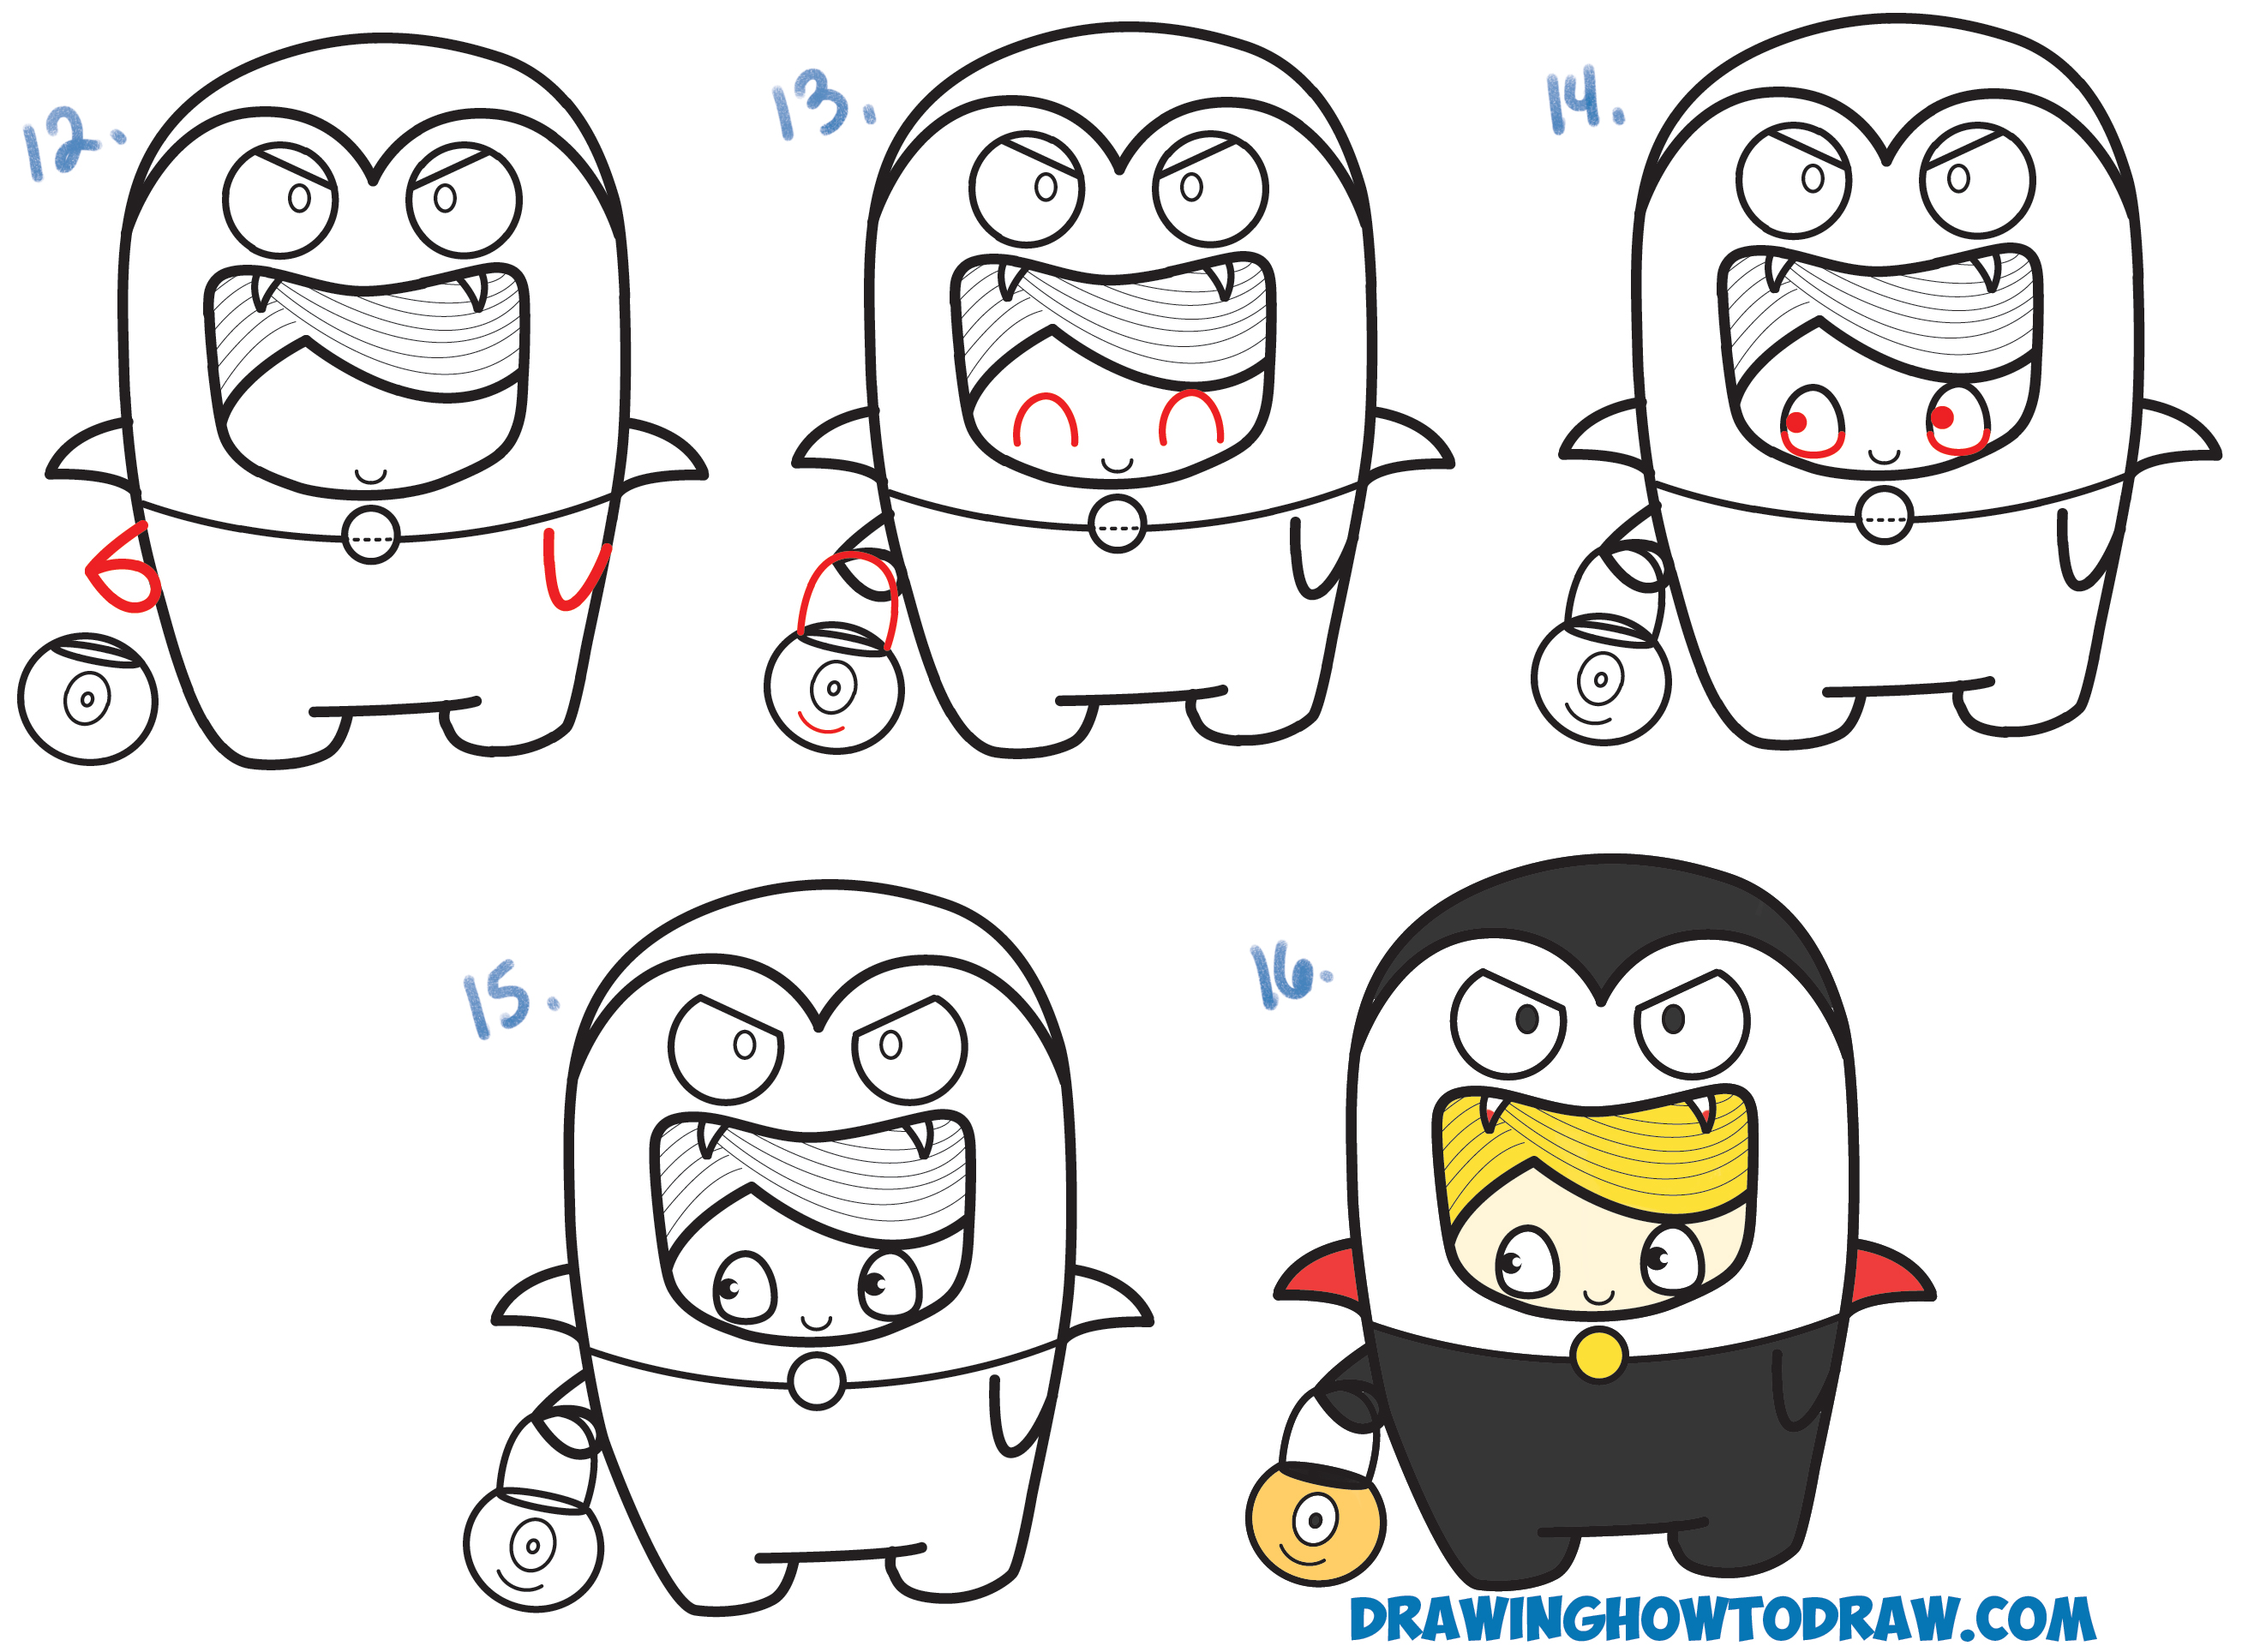 LearnHow to Draw a Kid in a Halloween Vampire Costume (Cute Kawaii) Simple Steps Drawing Lesson for Beginners